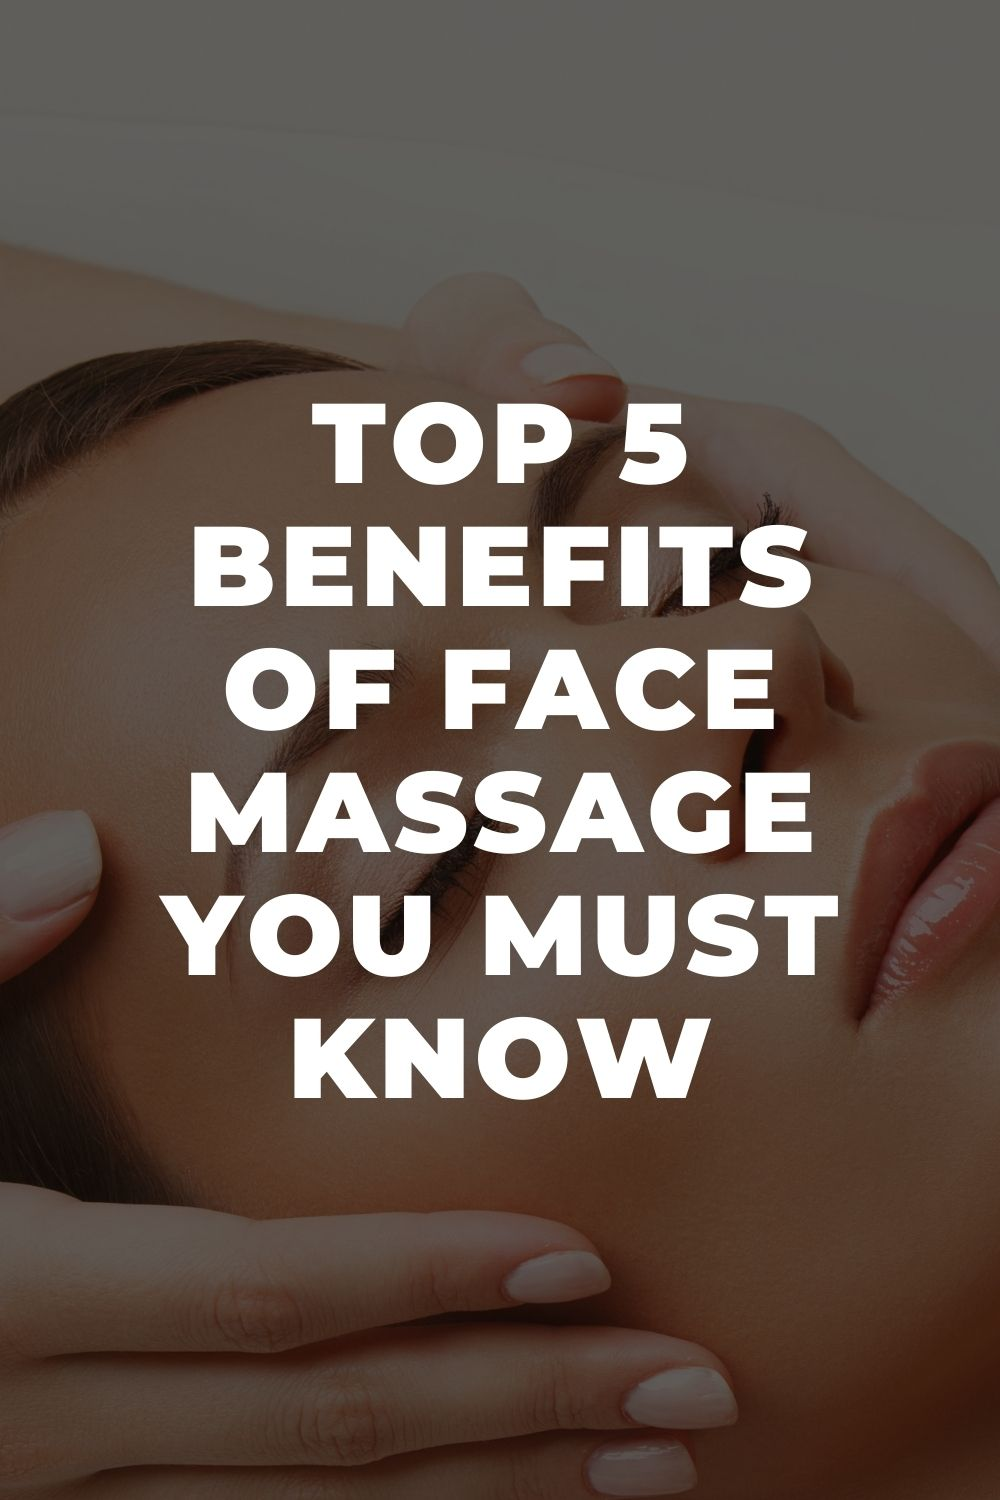 Top 5 Benefits of Face Massage You Must Know